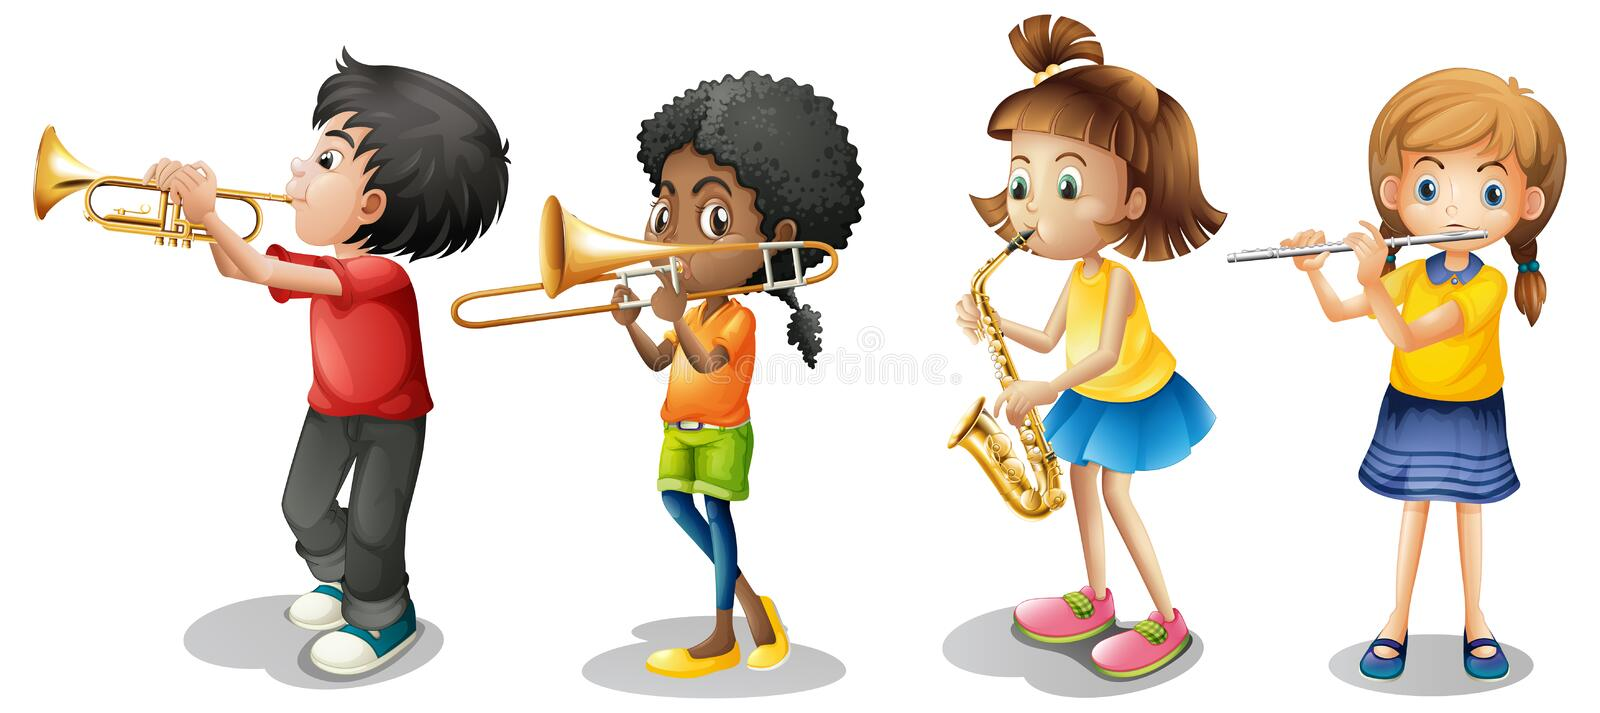 Kids playing musical instruments. Illustration vector illustration